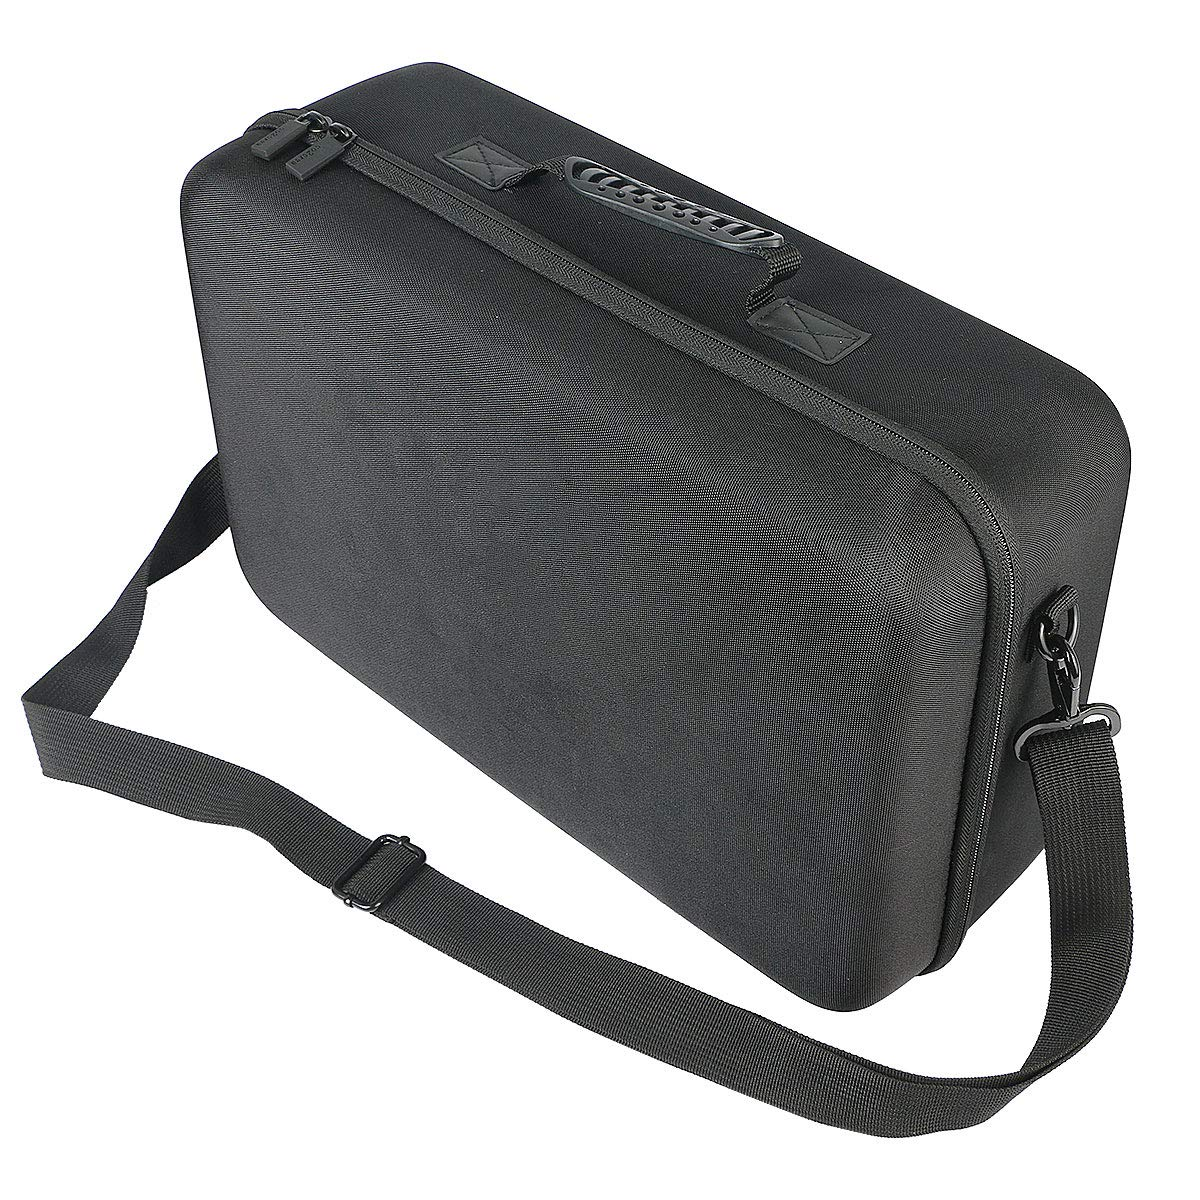 co2crea Hard Travel Case for HP Tango Smart Home Printer 2RY54A (Can't to fit HP Tango Cover) by Co2Crea (Image #5)